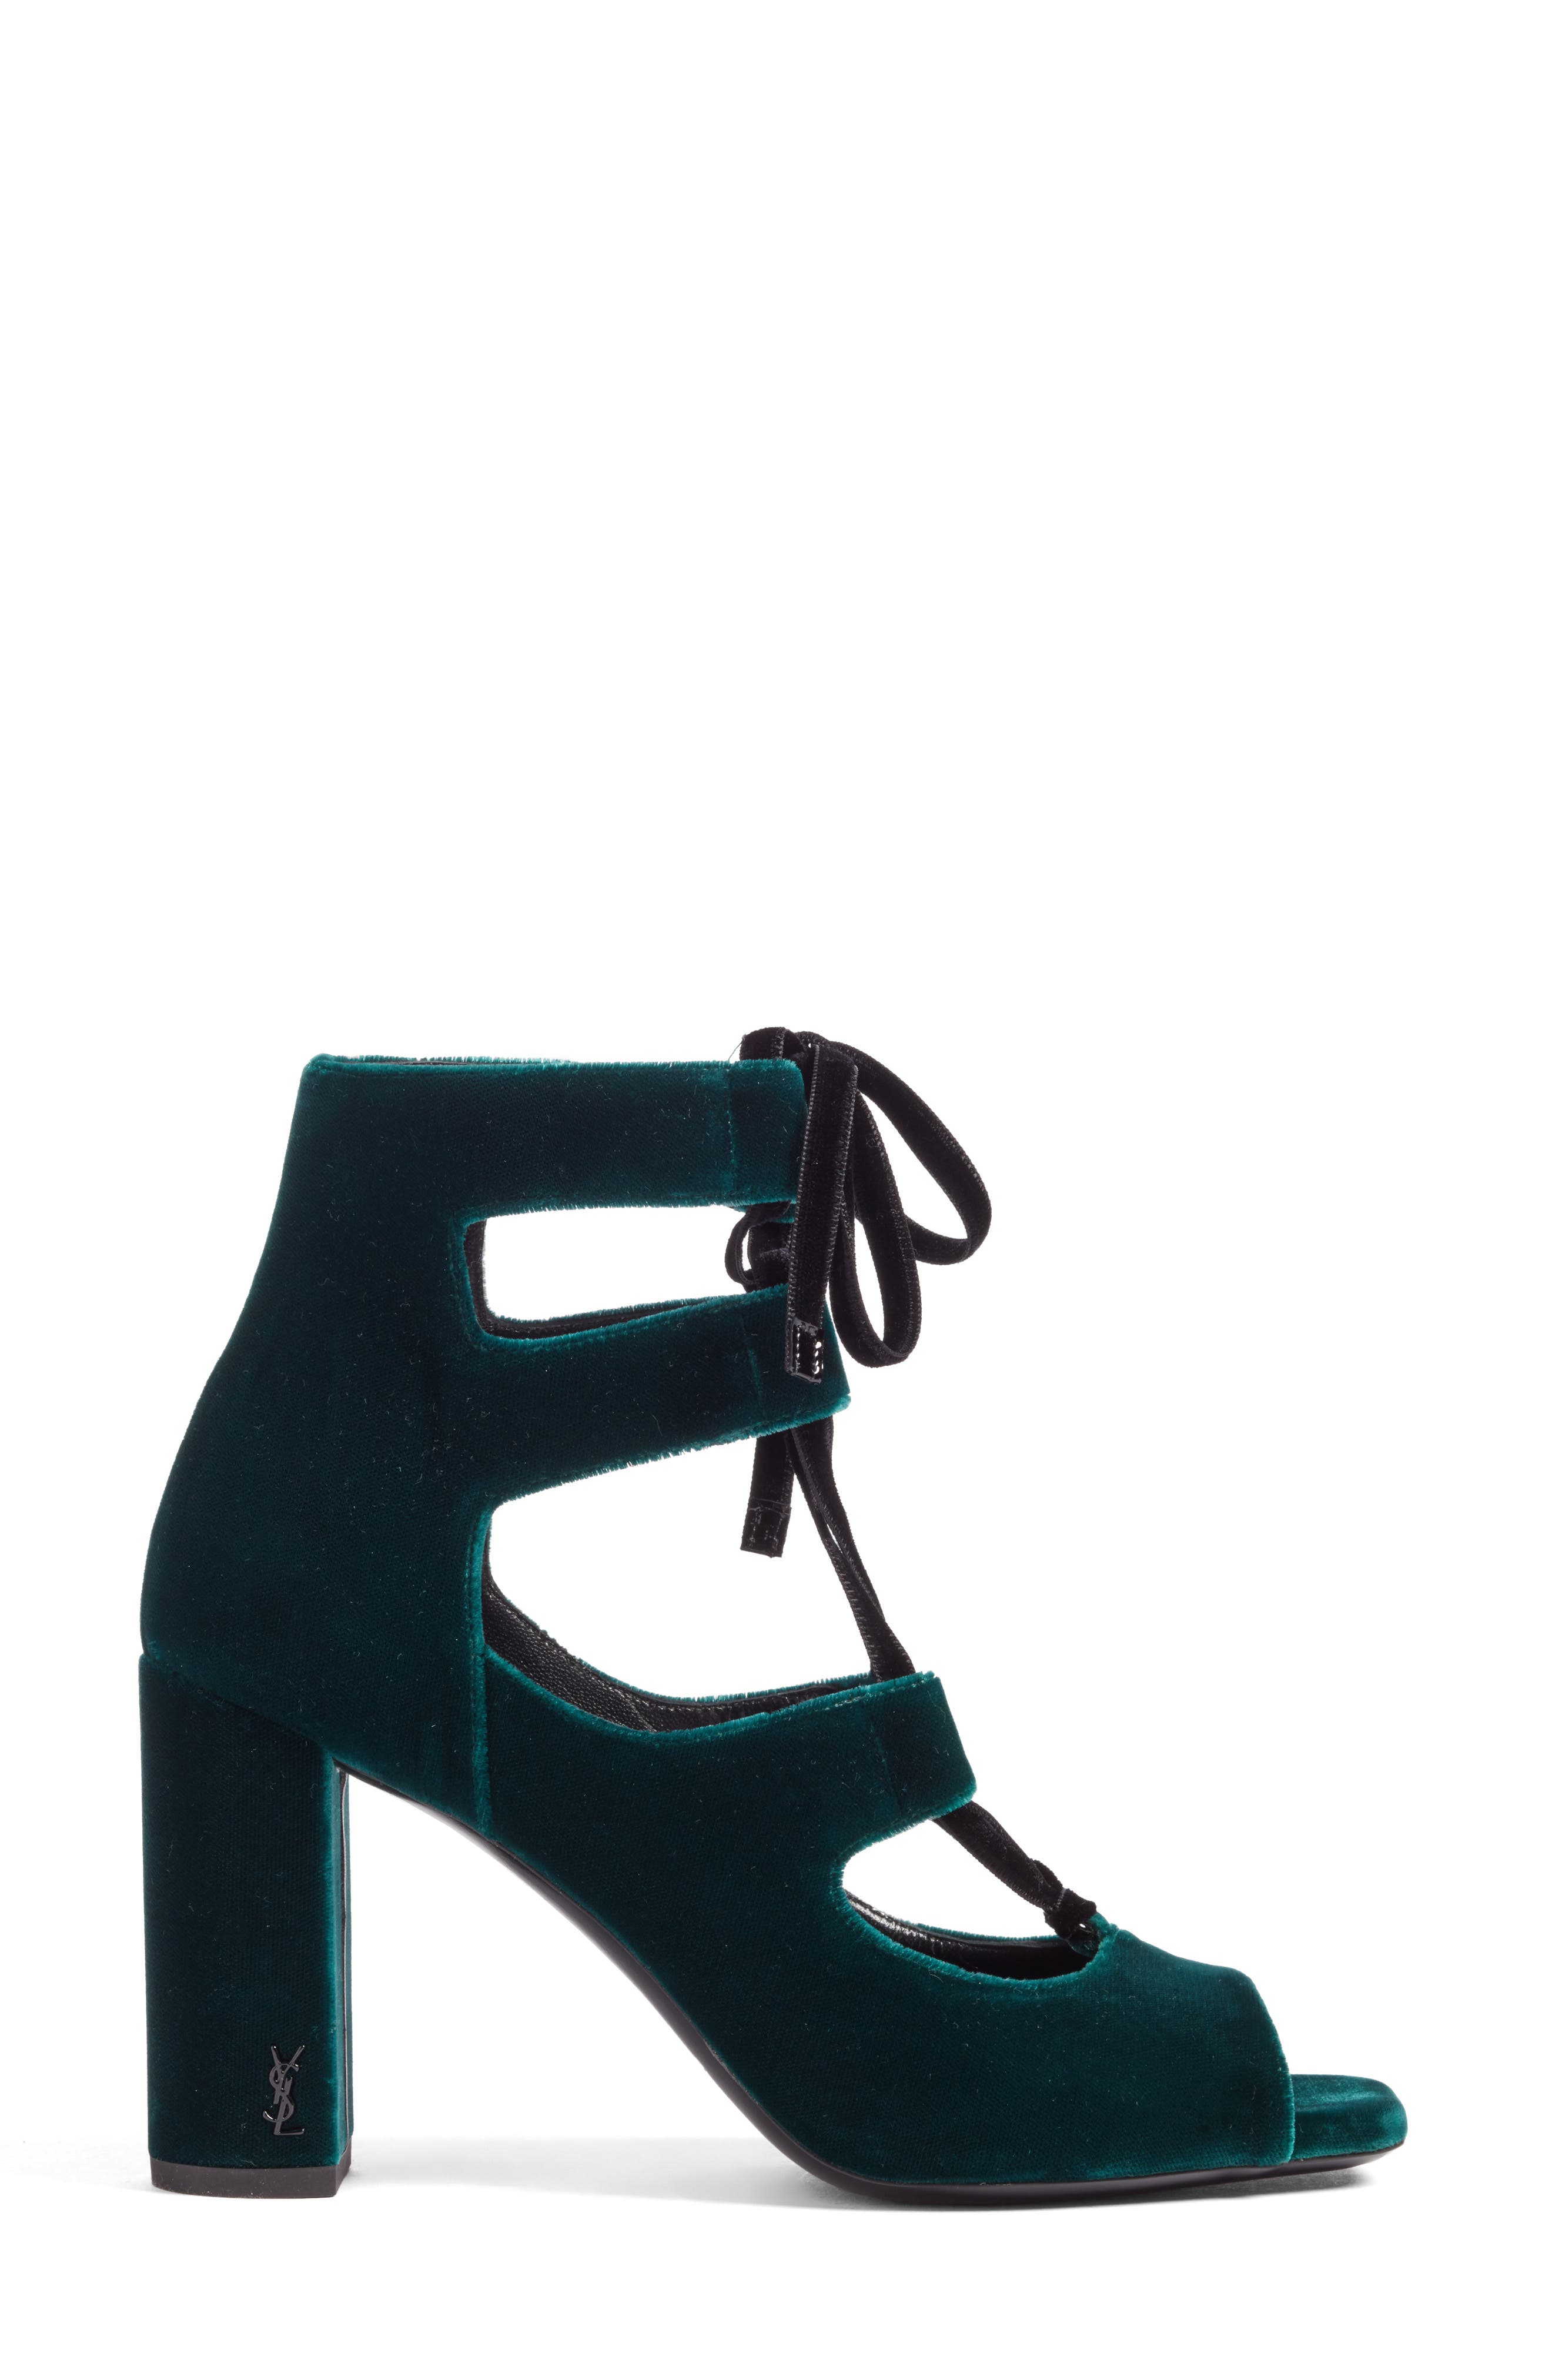 Loulou Ghillie Sandal,                             Alternate thumbnail 3, color,                             Teal